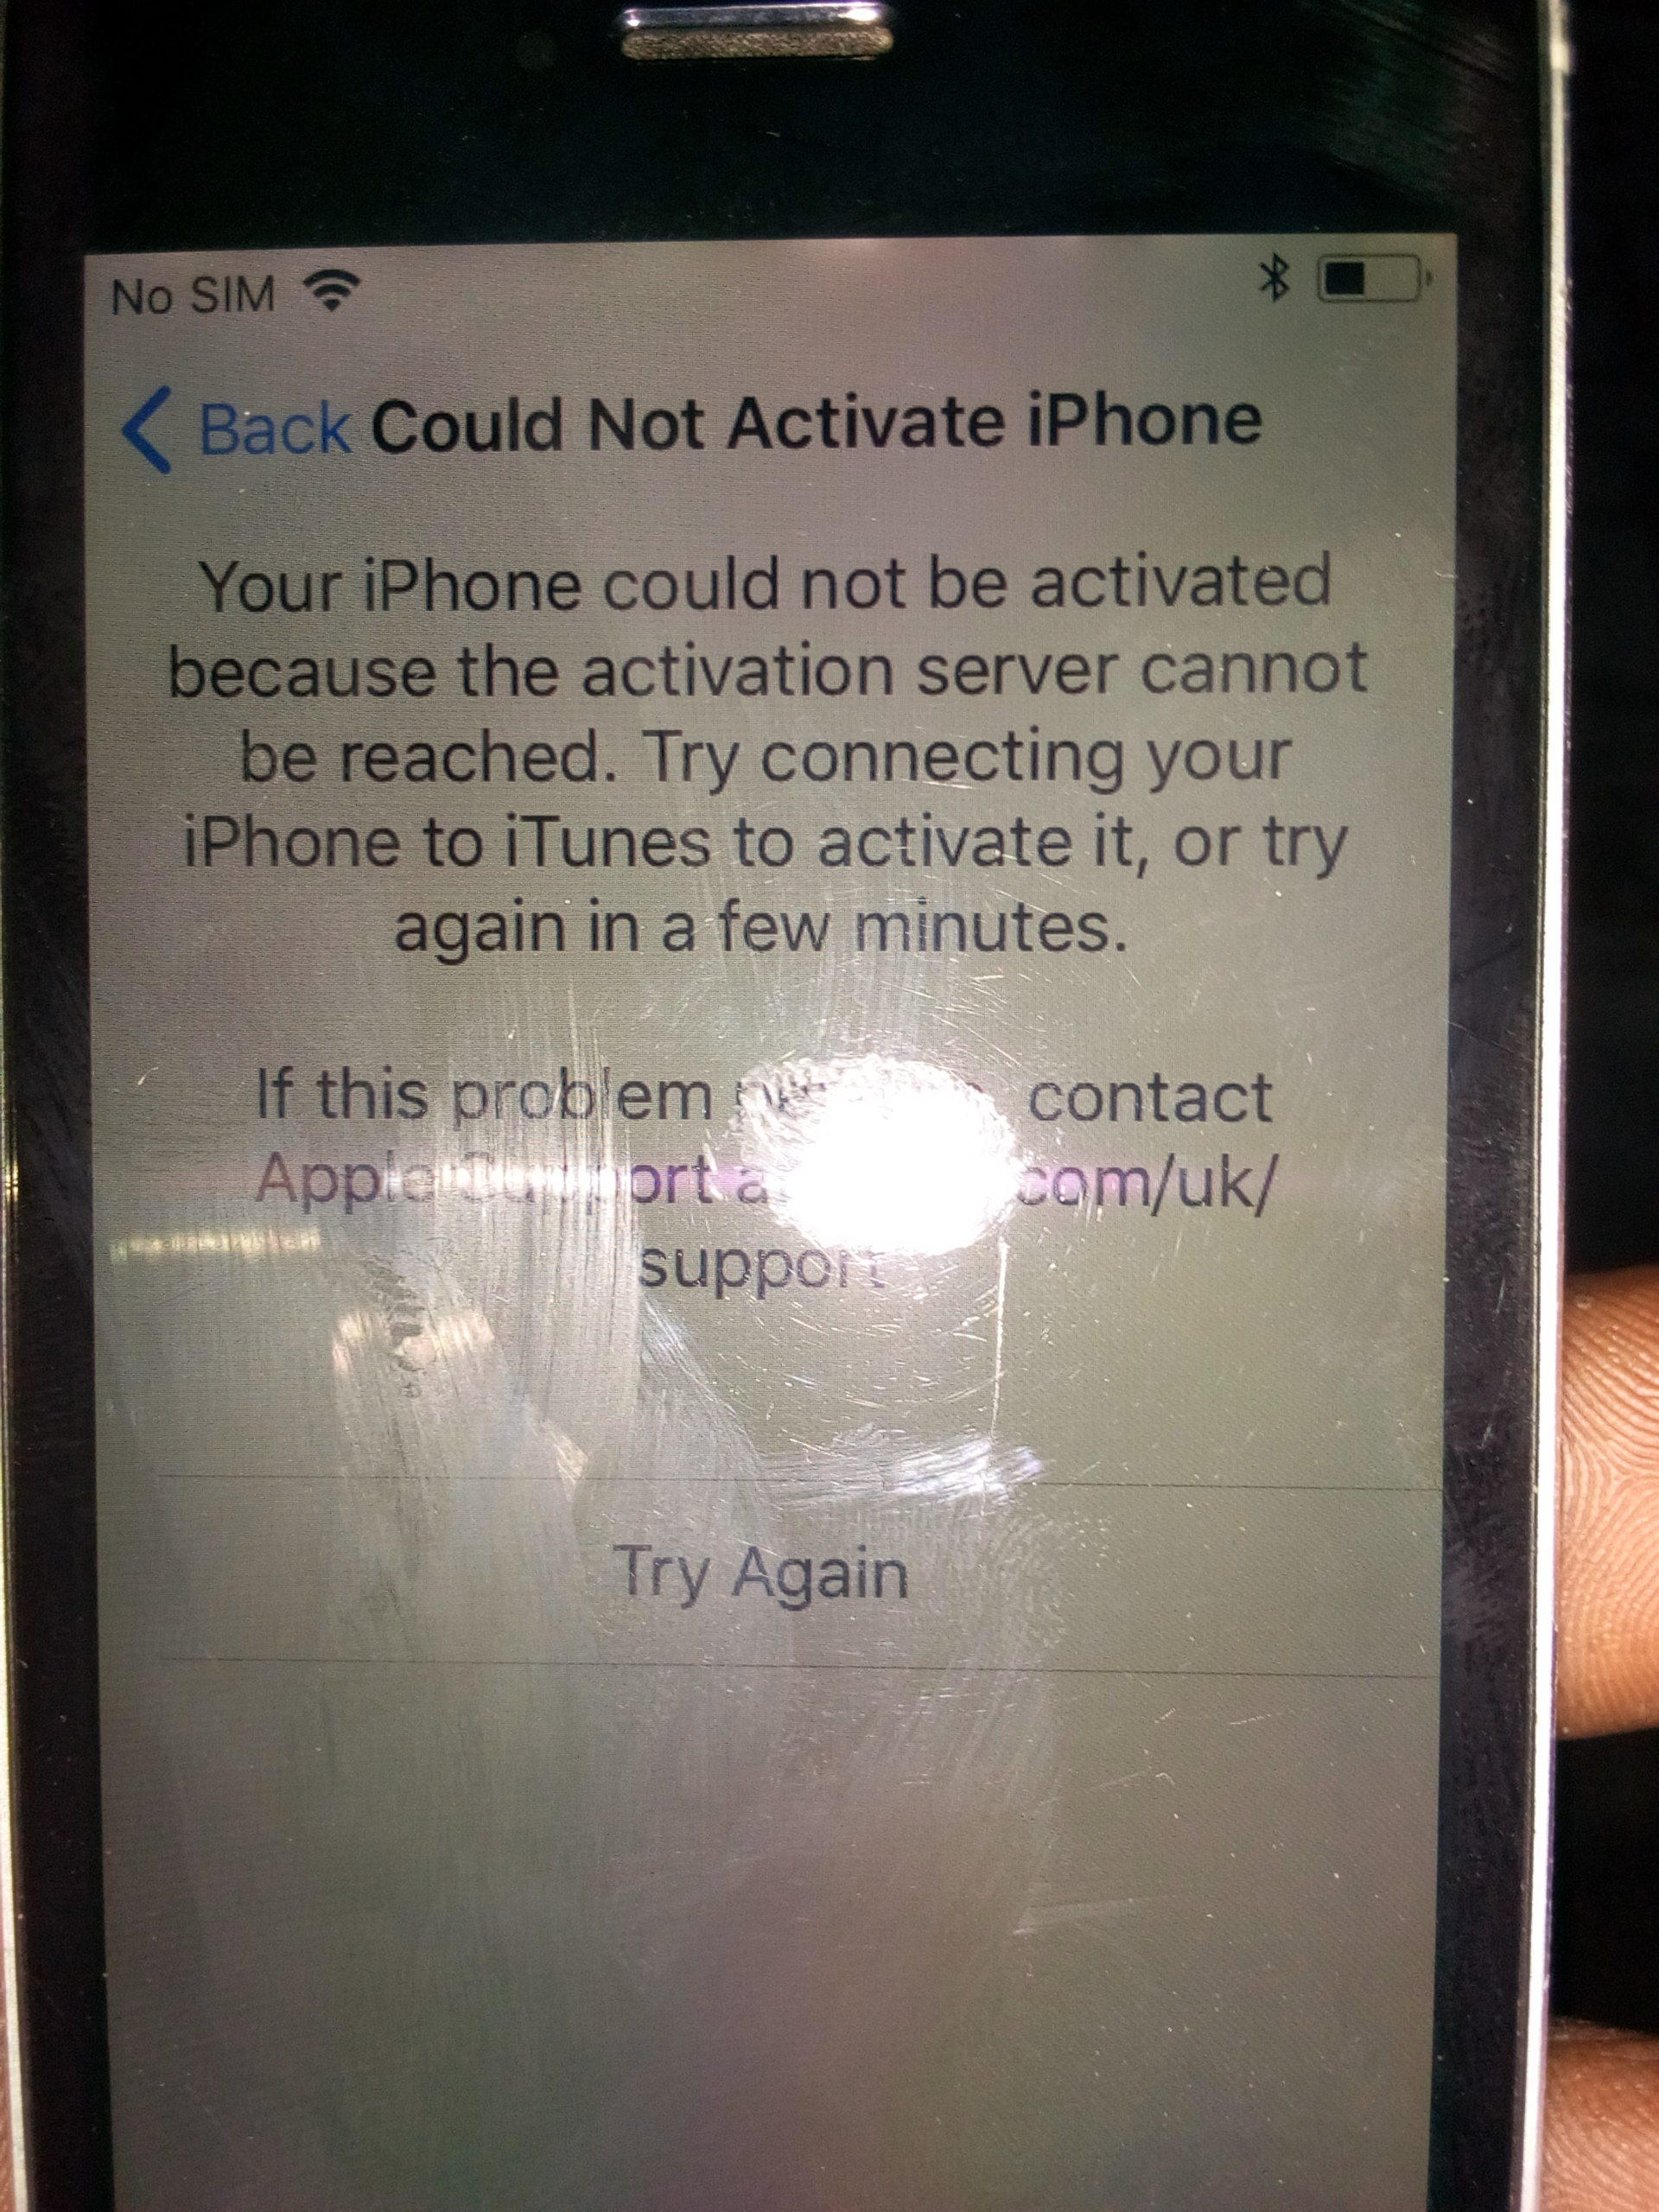 iphone error activation server cannot be reached